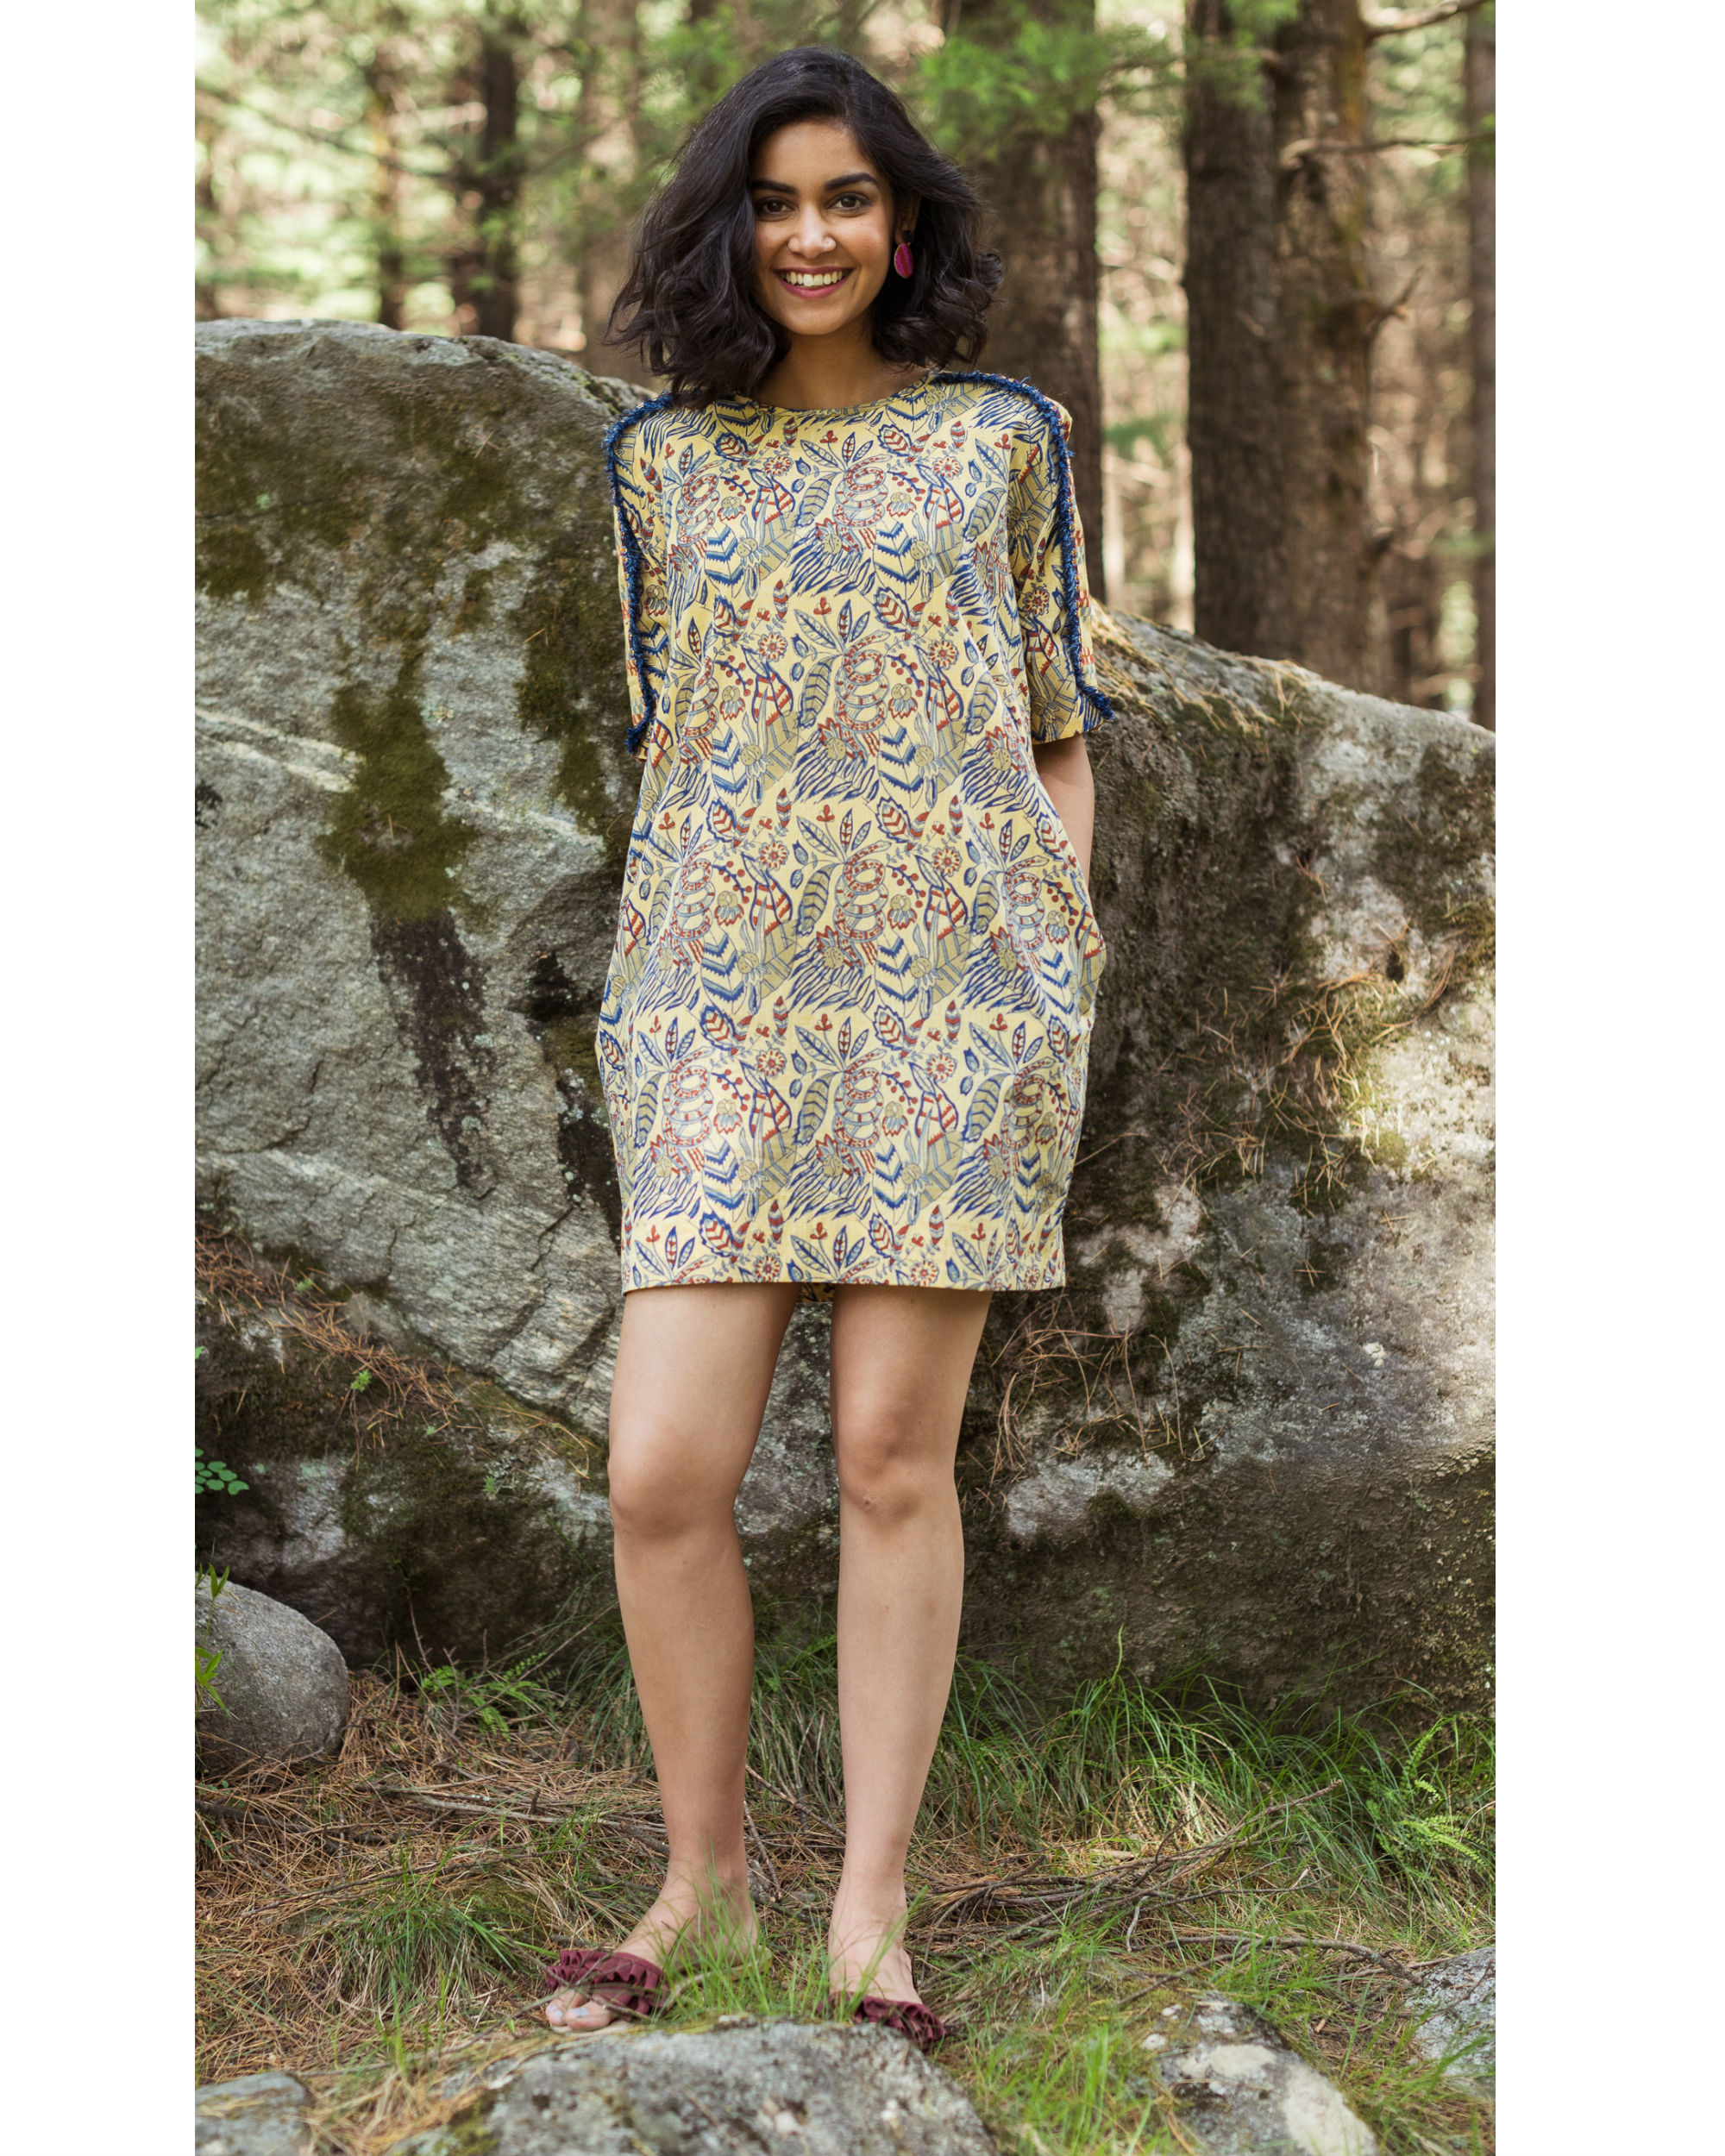 Rainforest shift dress